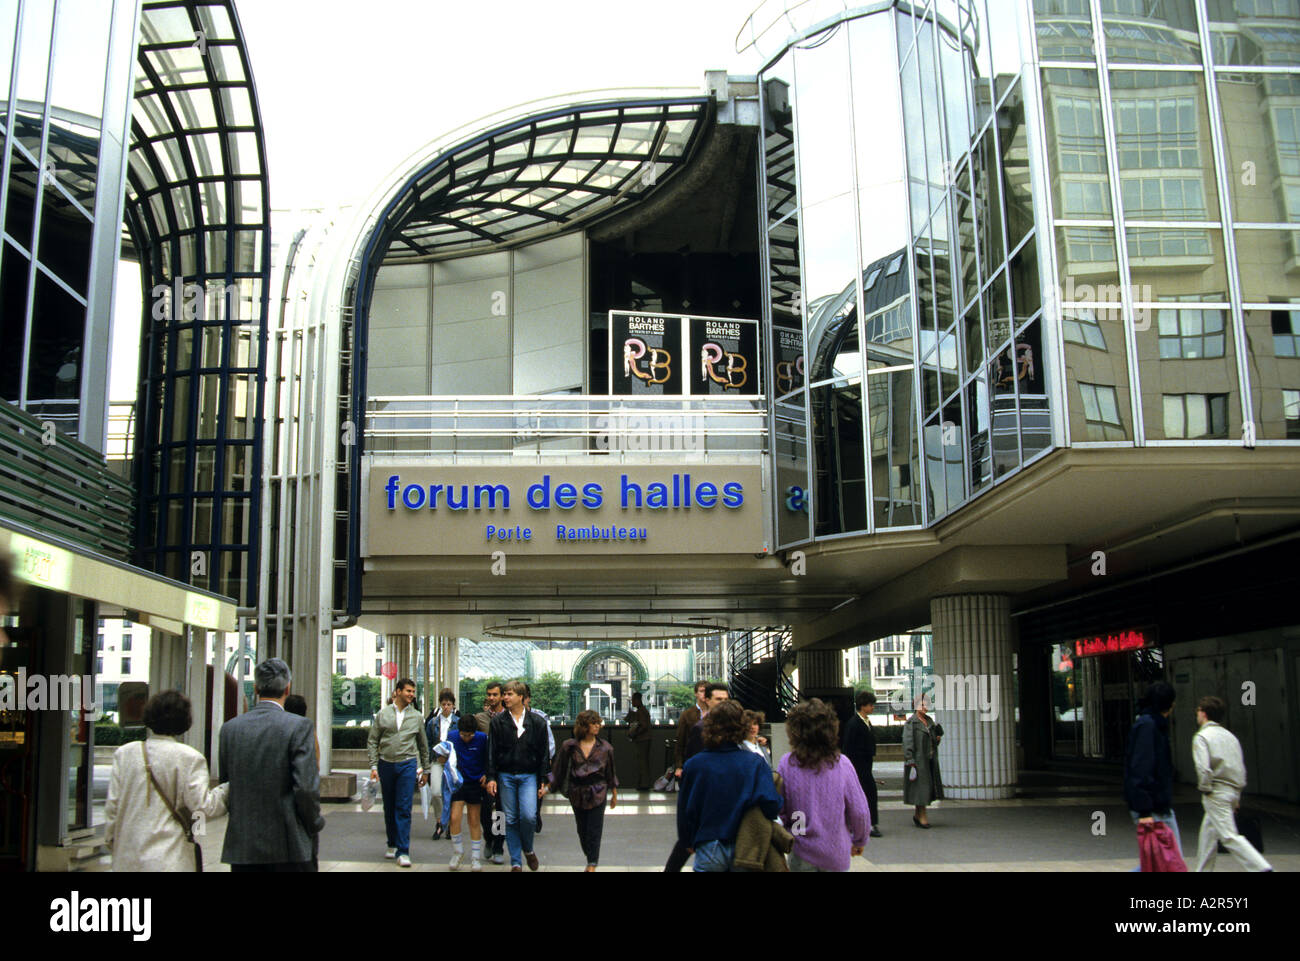 paris france french forum des halles shopping mall stock. Black Bedroom Furniture Sets. Home Design Ideas